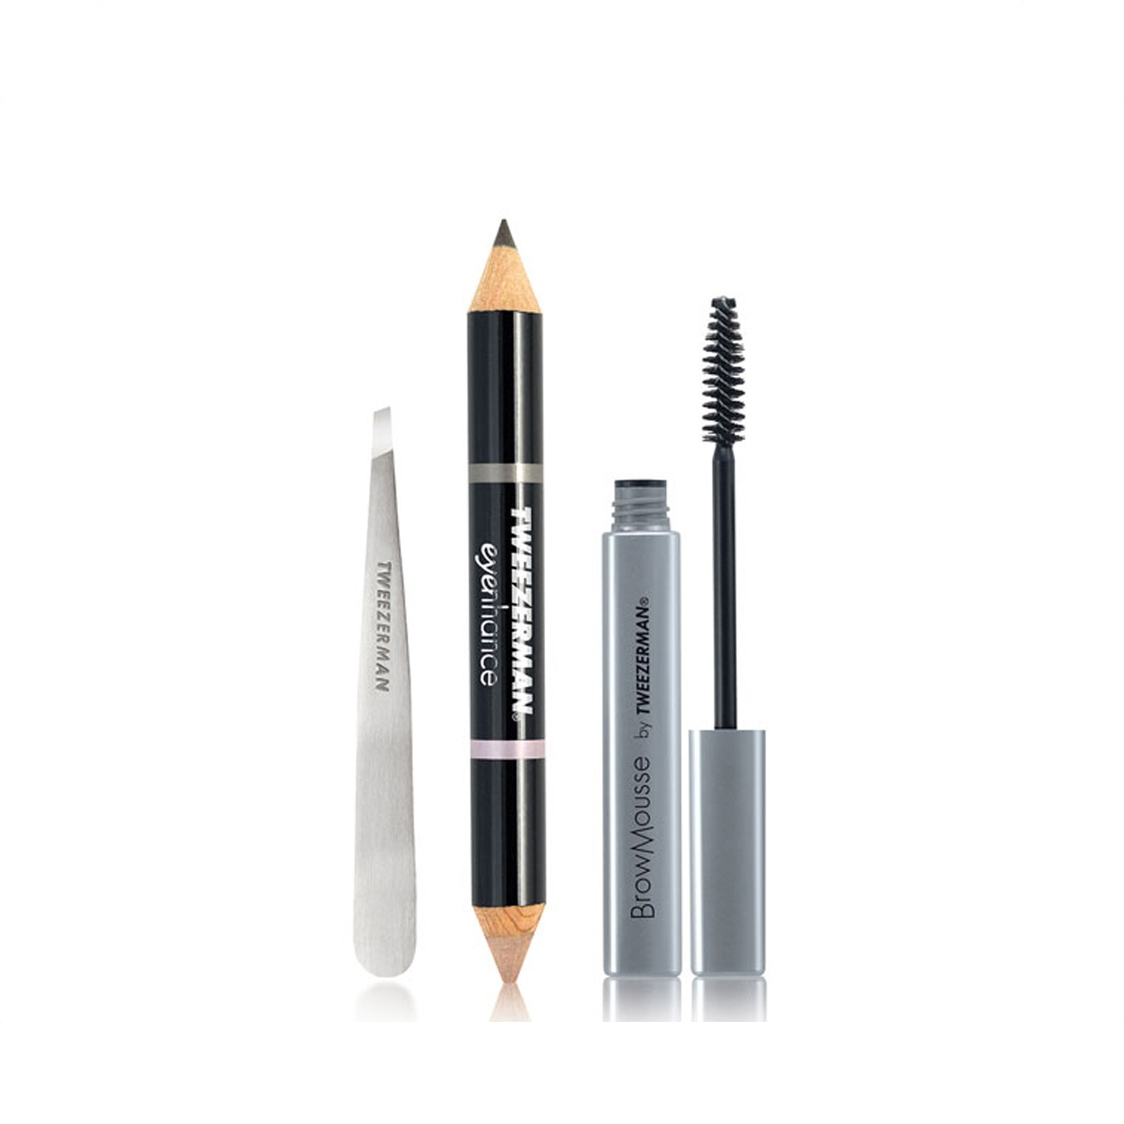 Eyenhance Brow Kit